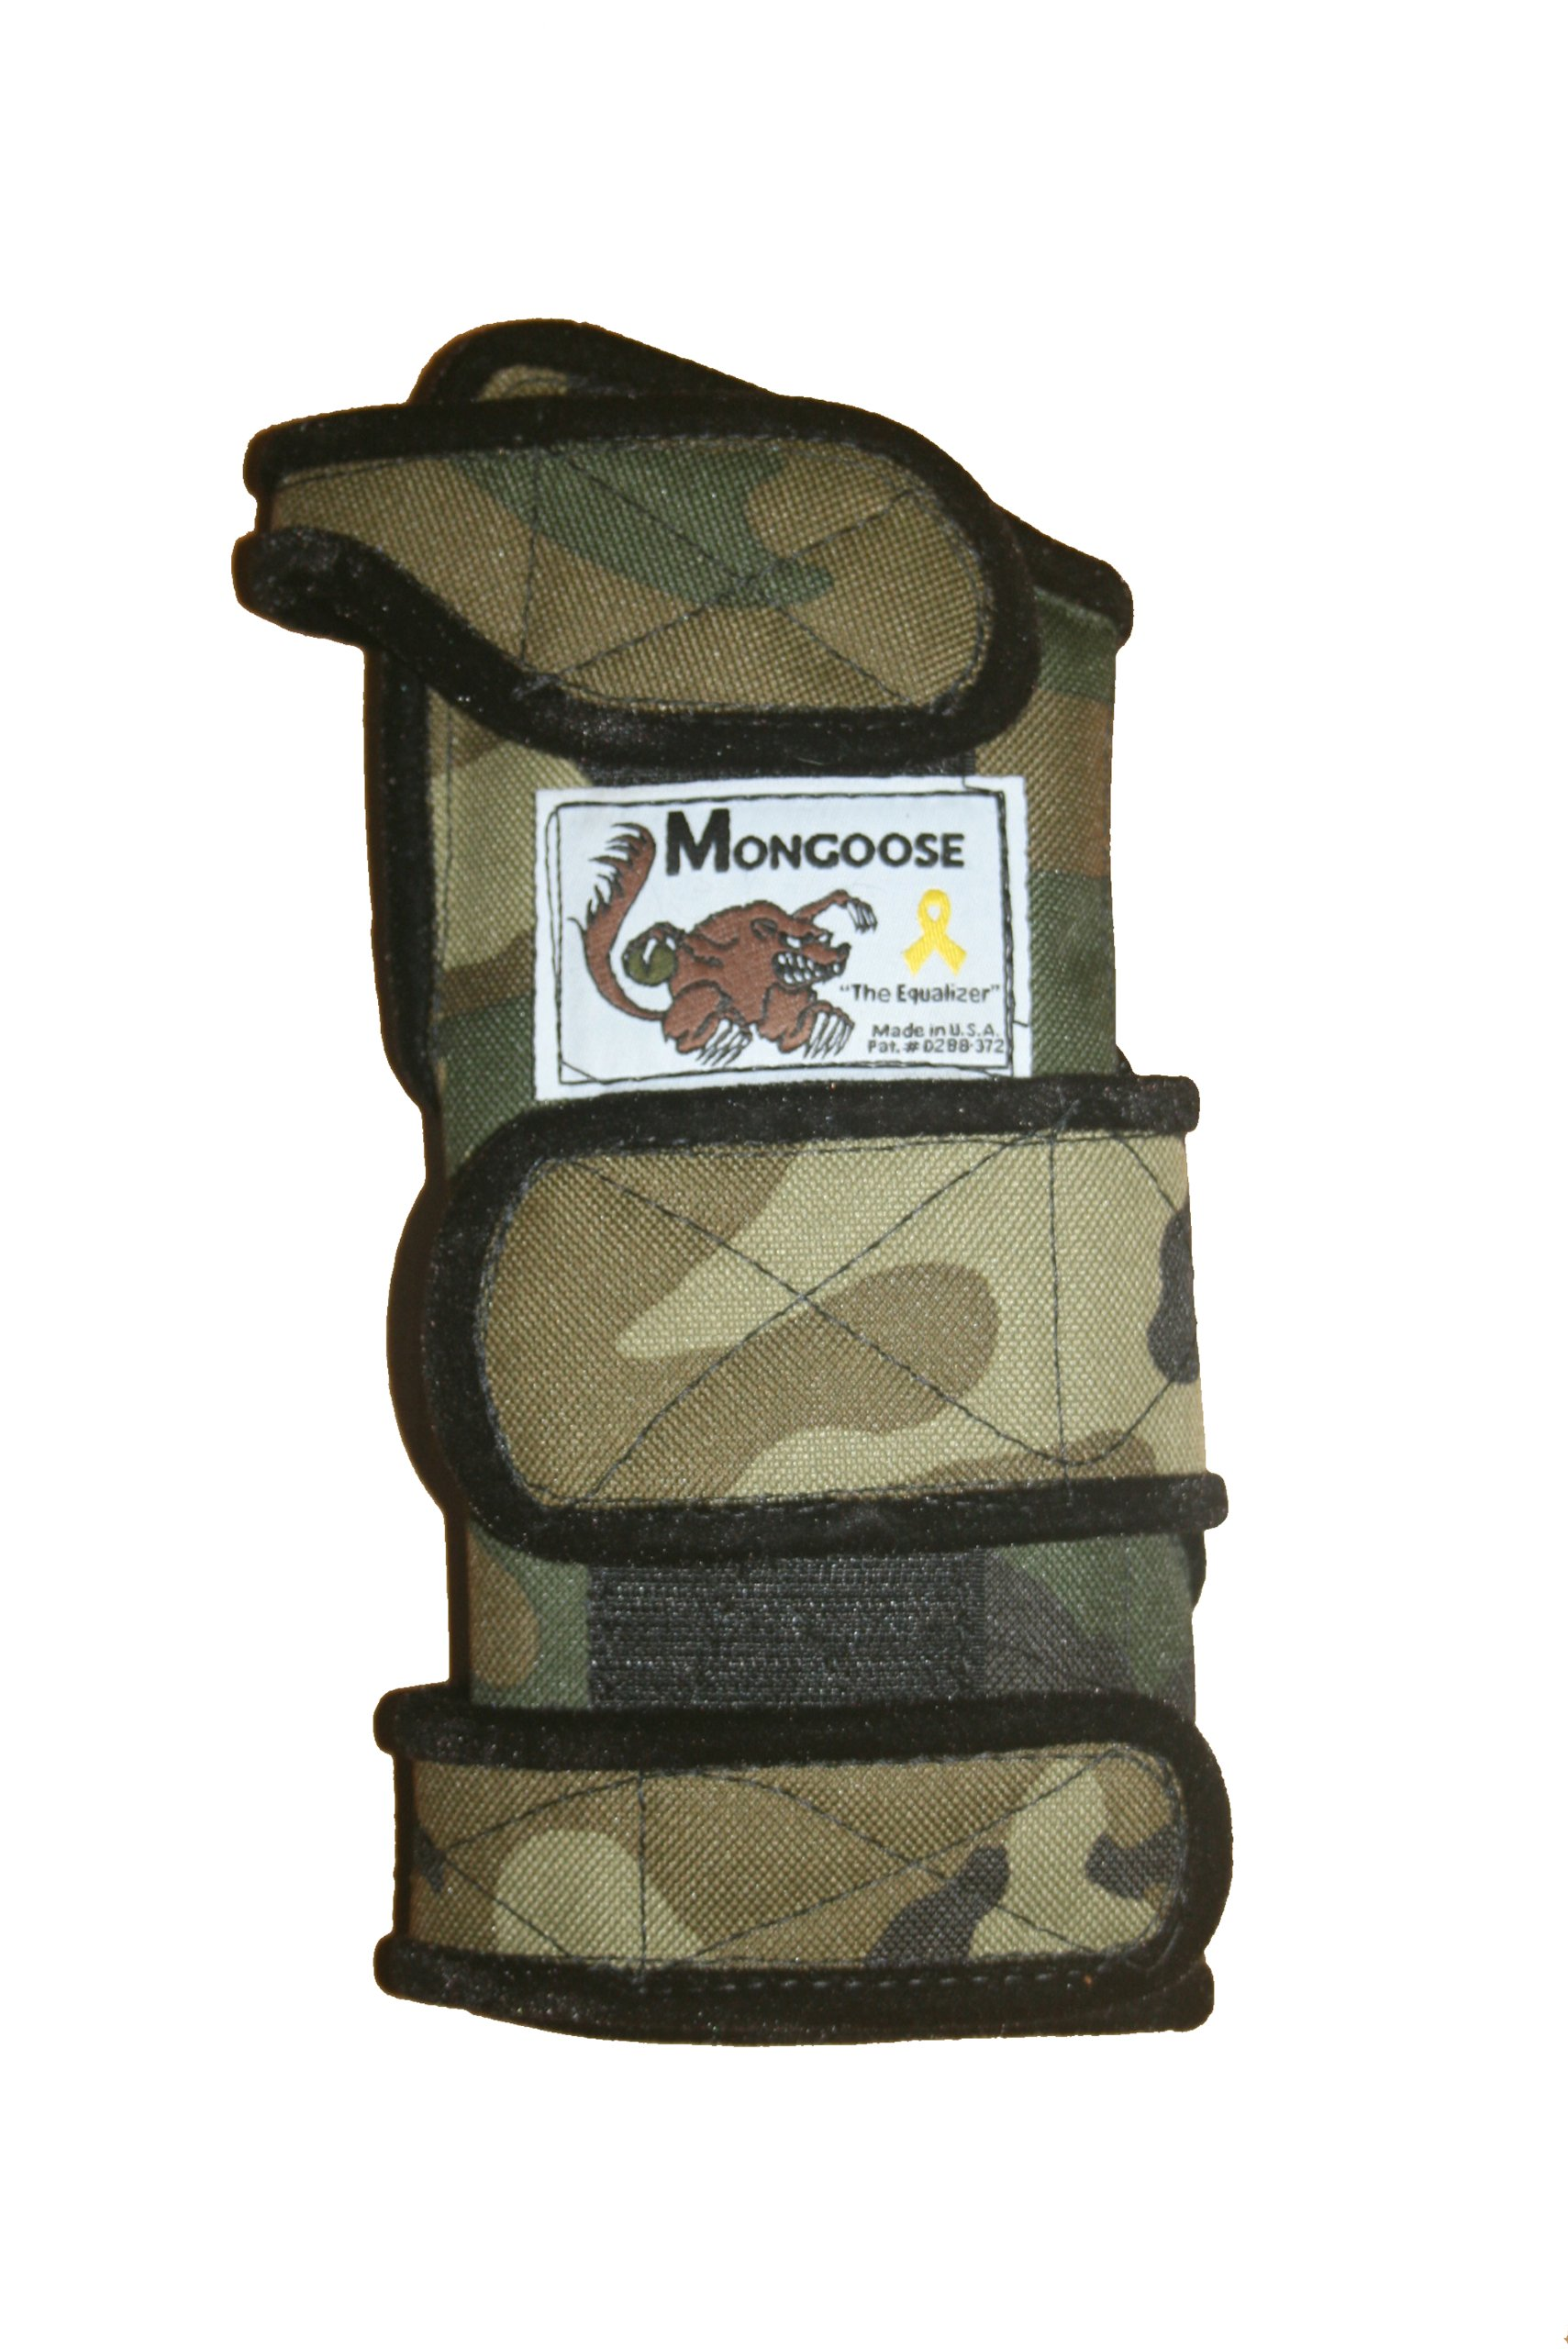 Mongoose ''Equalizer Bowling Wrist Support Right Hand, Large, Camo